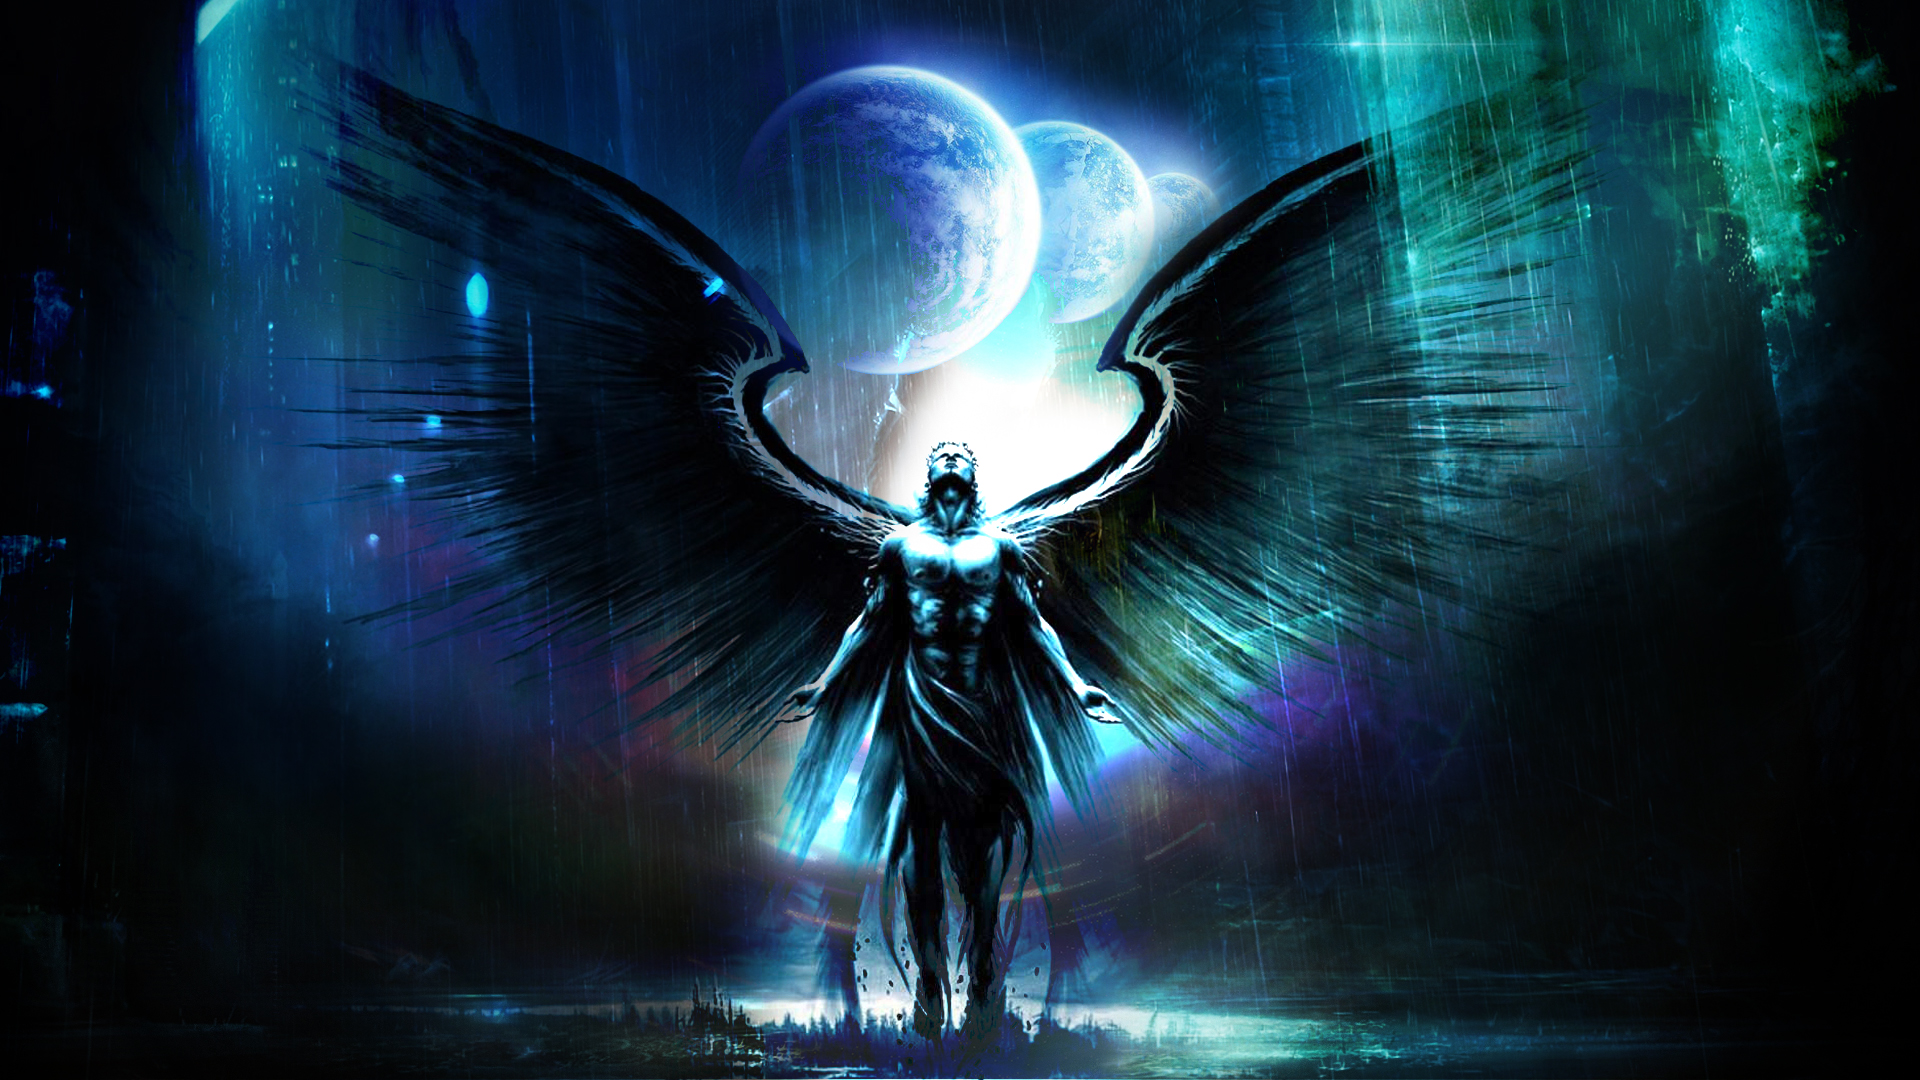 Mystical Angel Full HD Wallpaper and Background Image ...